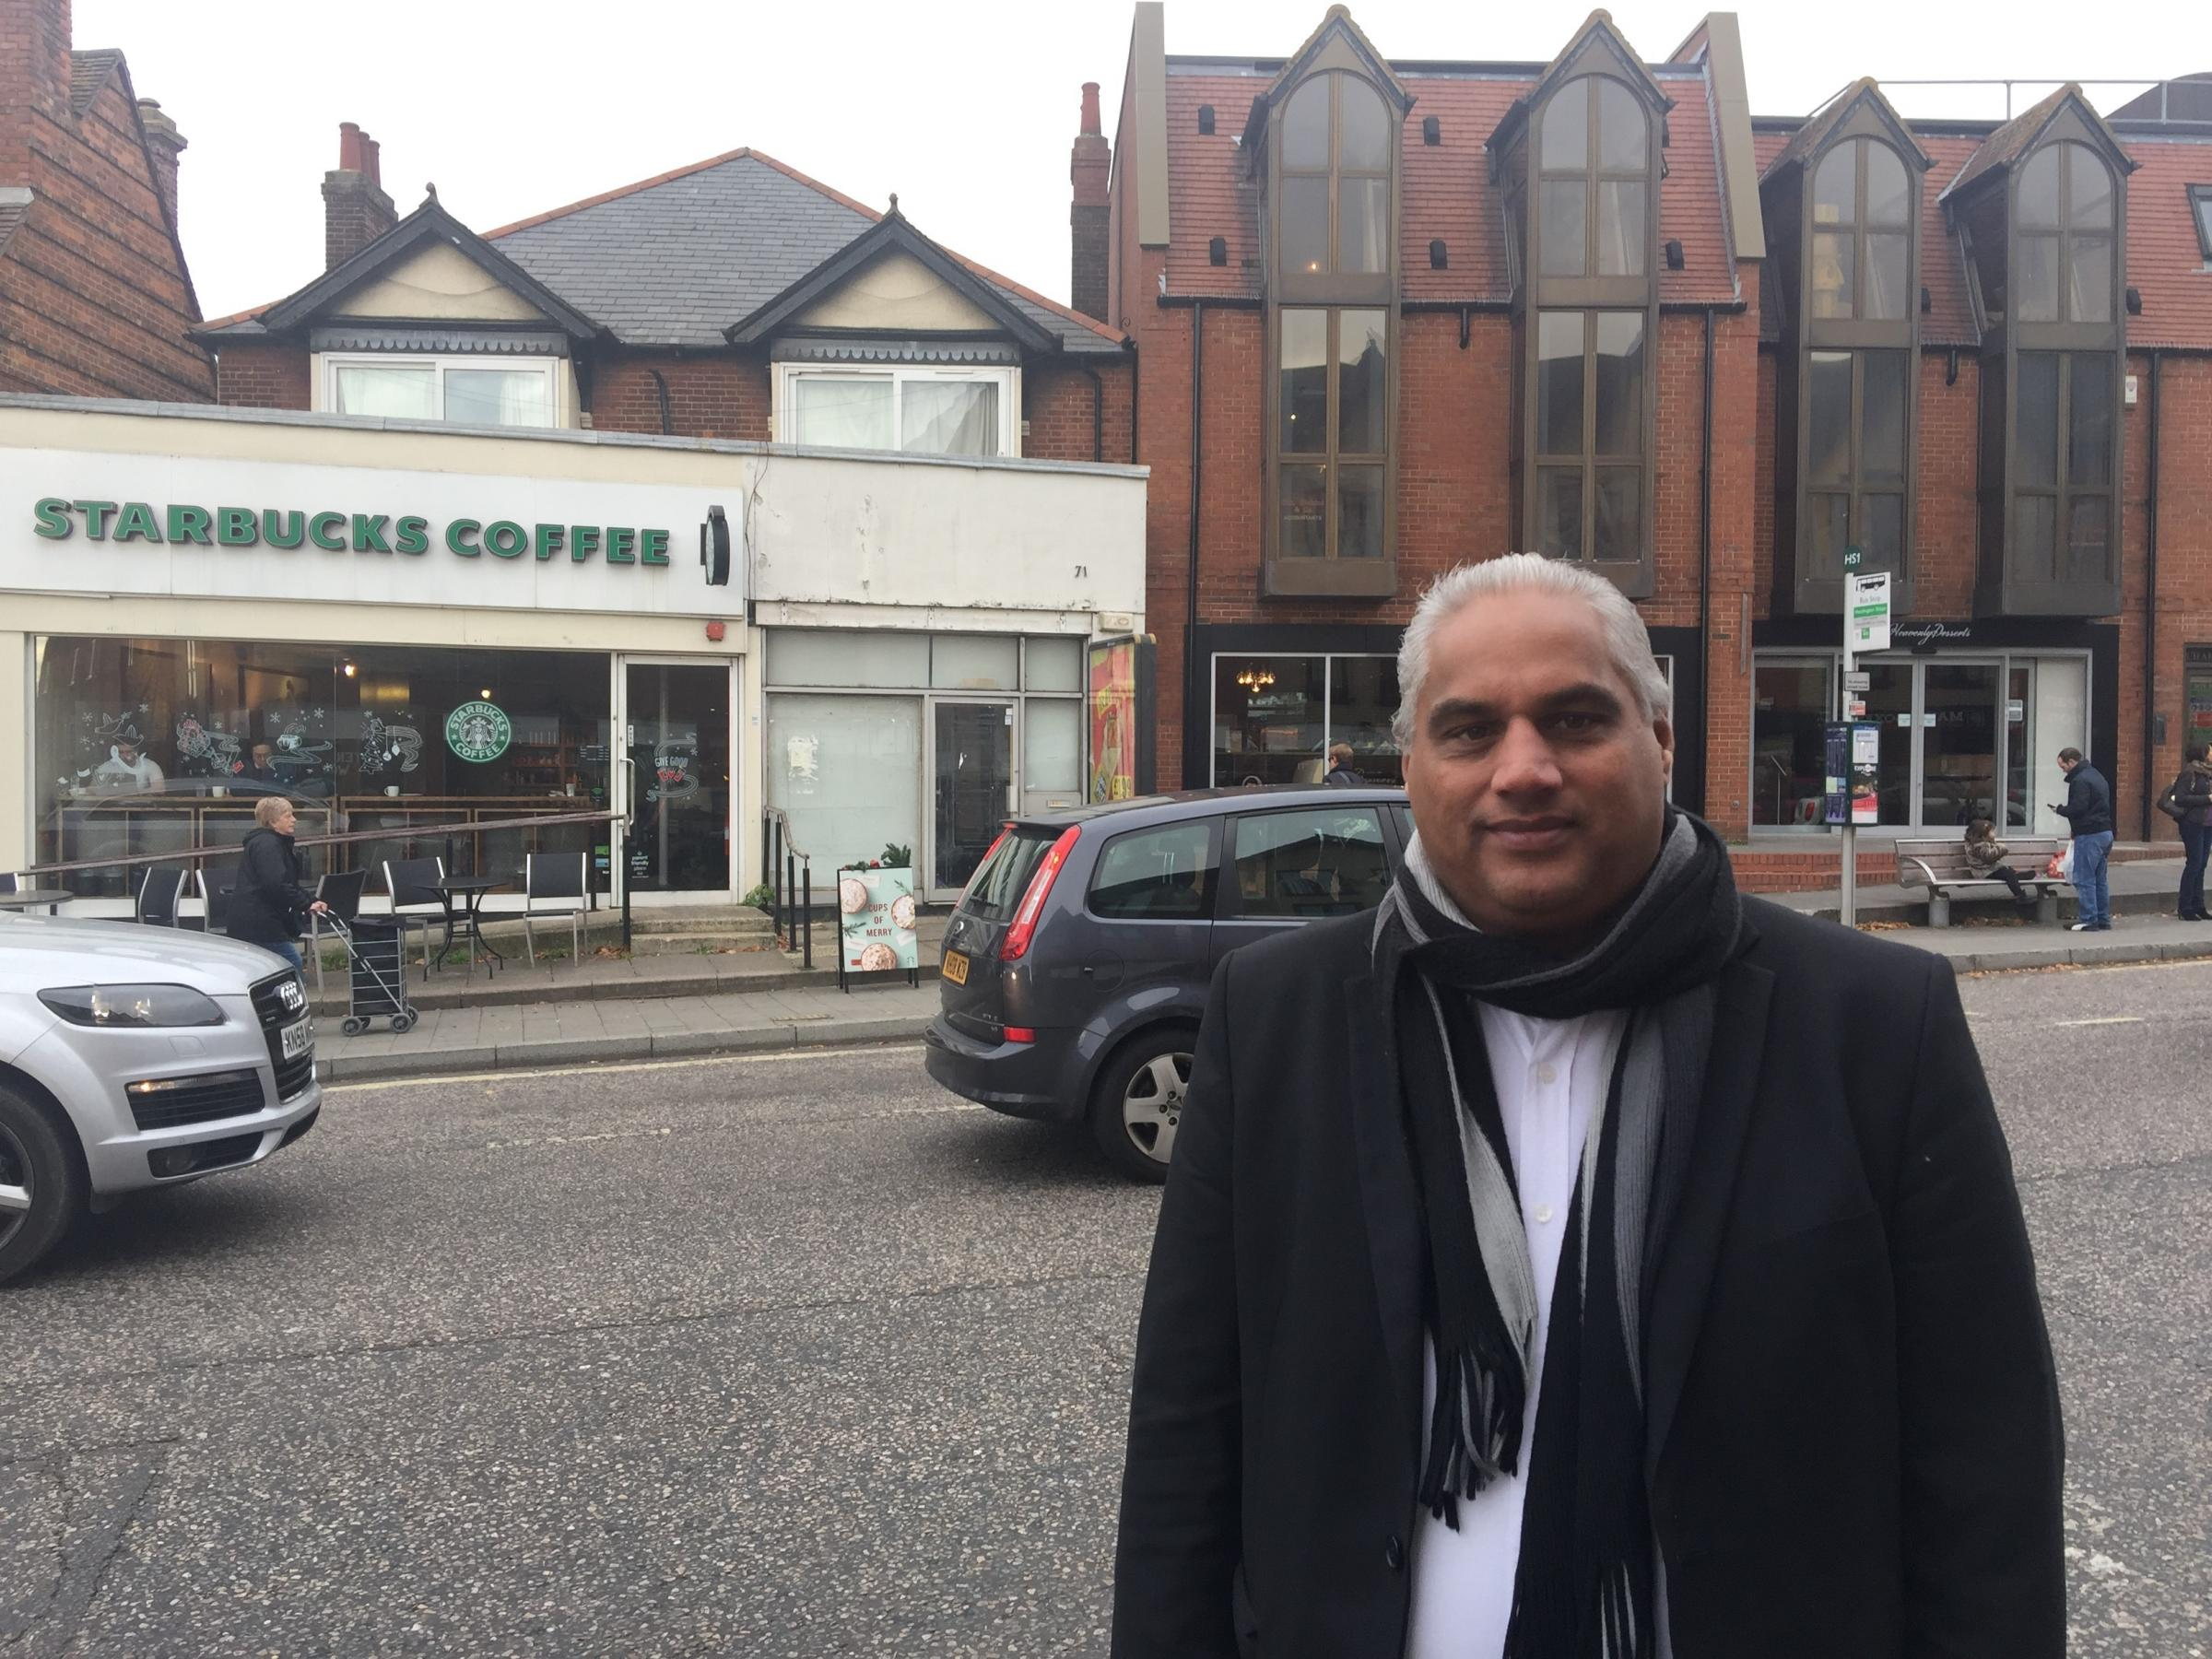 PLANS: Altaf - Khan on Headington high street by number 71 on London Road, which is an empty unit they're hoping with entice newcomers to the area and the forum.